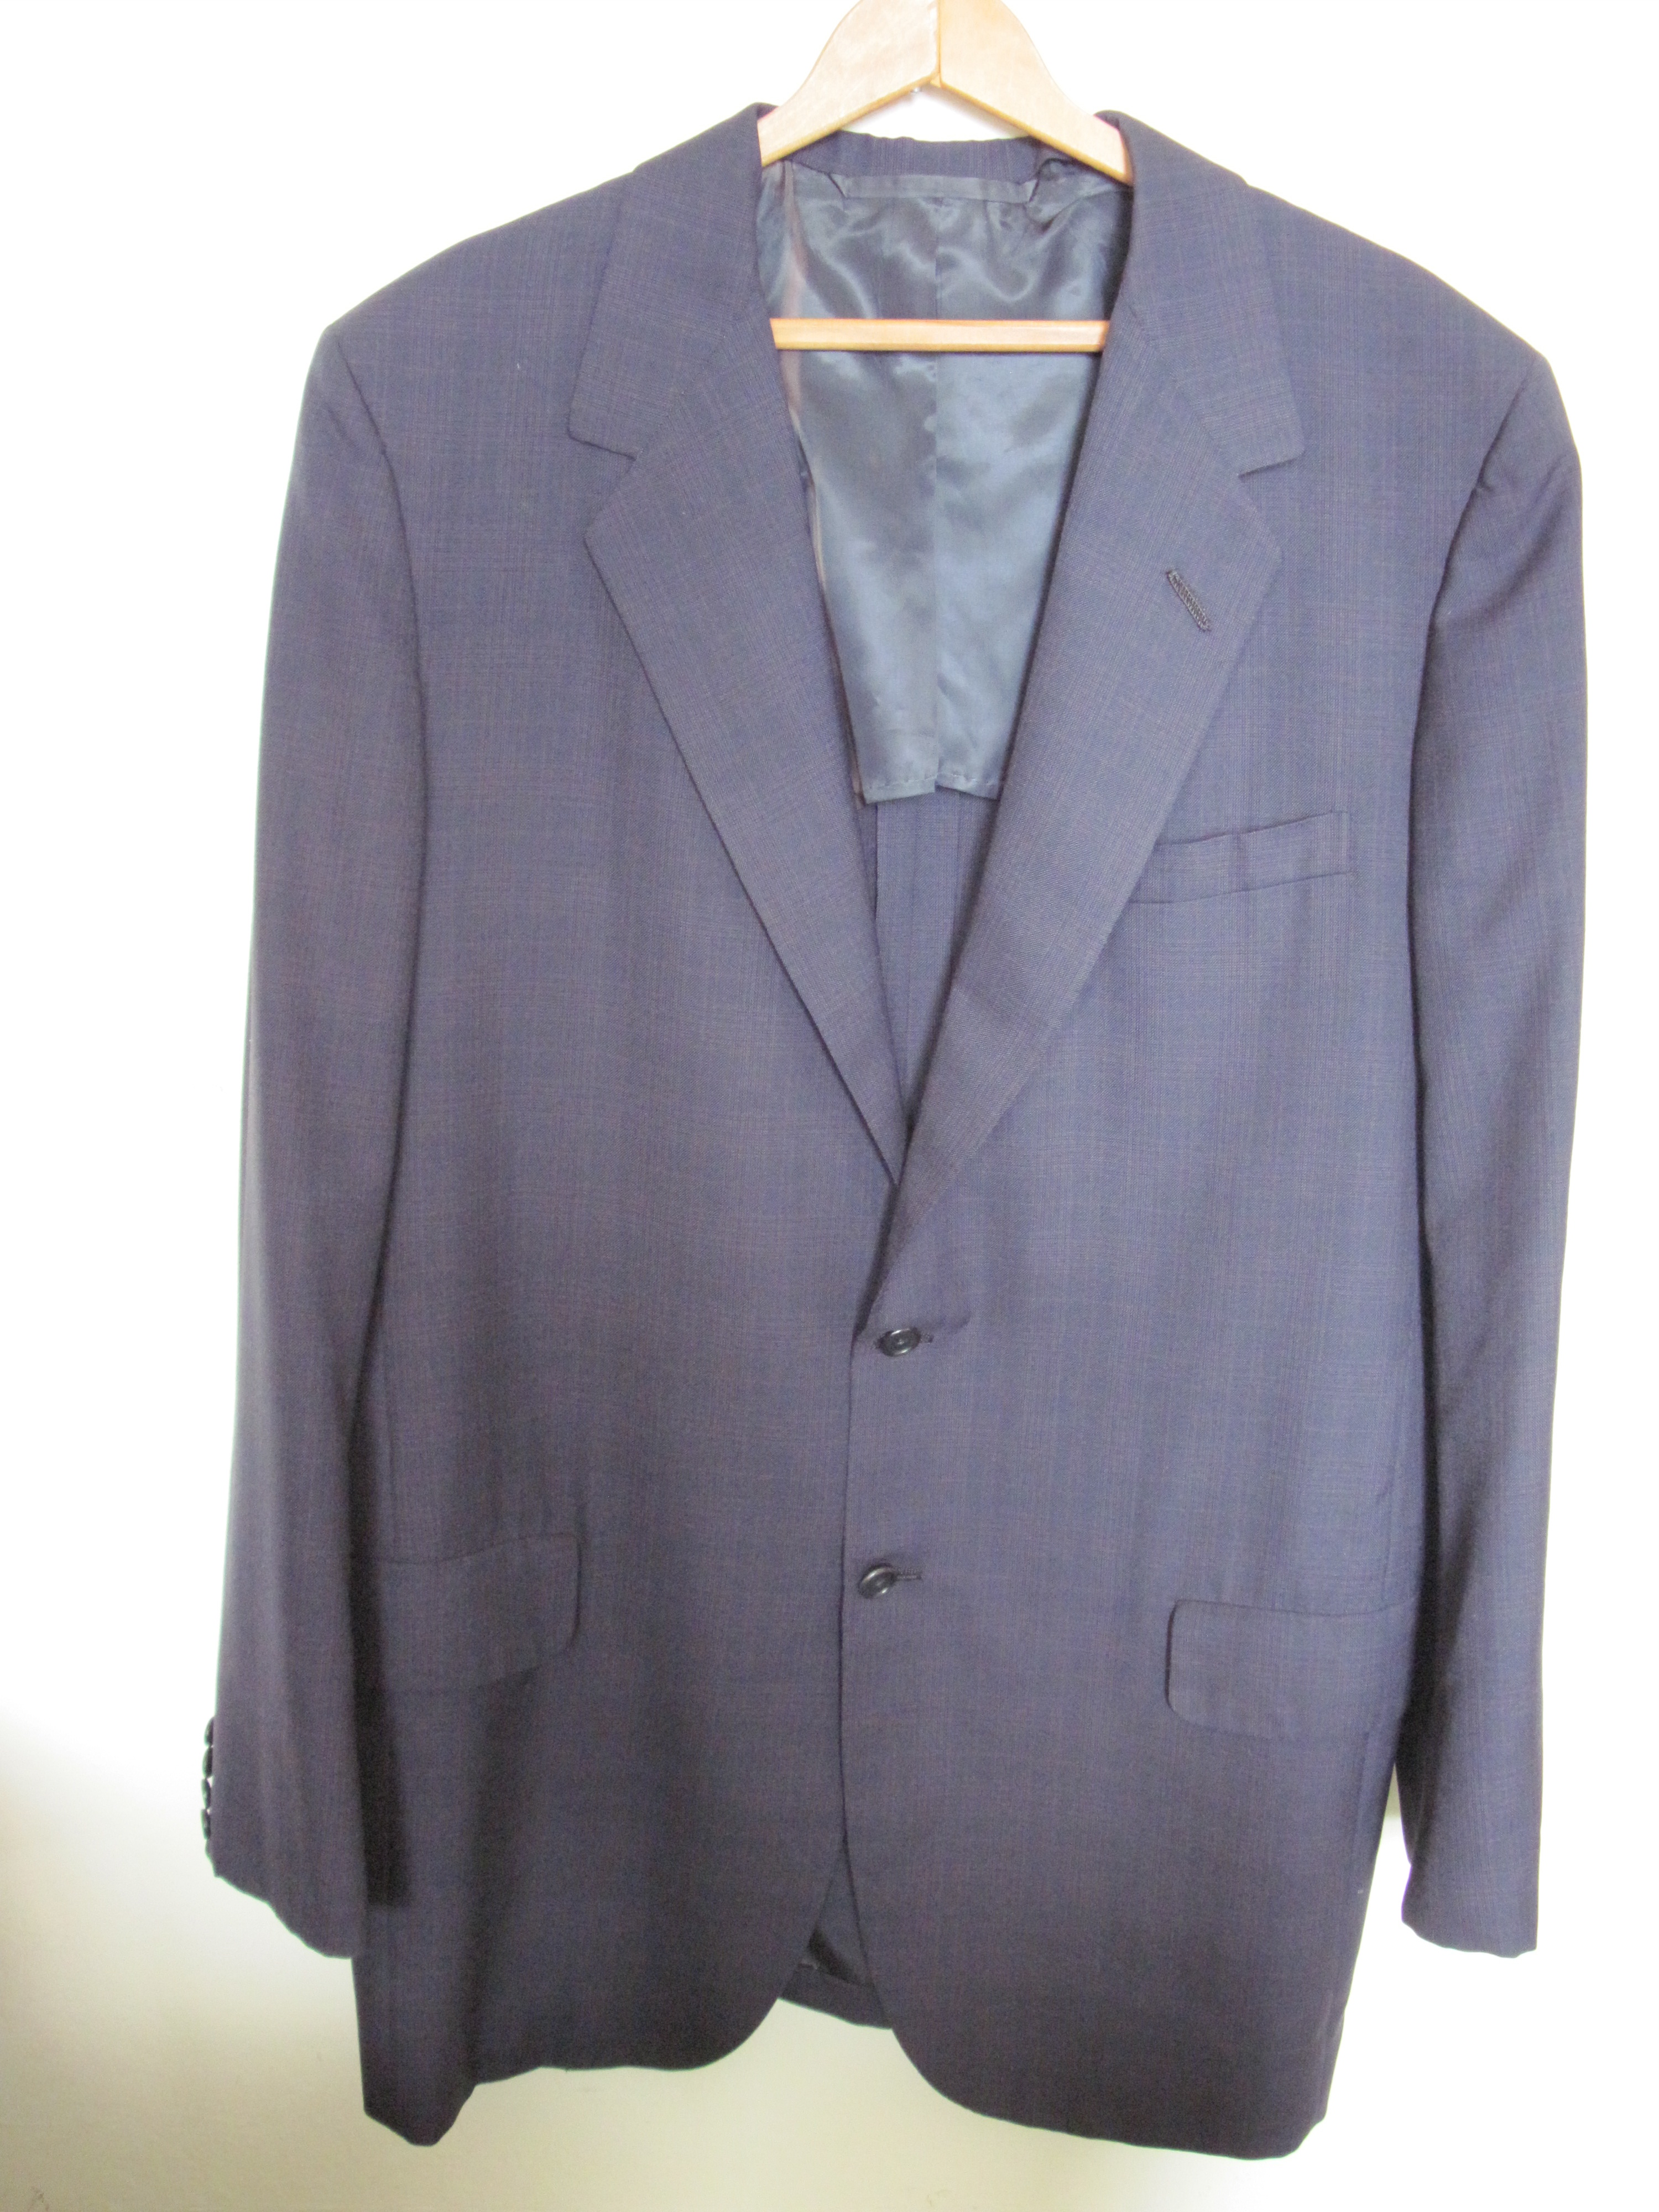 1ee5036d8 MTM Oxxford navy sport coat - roughly 44R (starting price - $0.99) here: